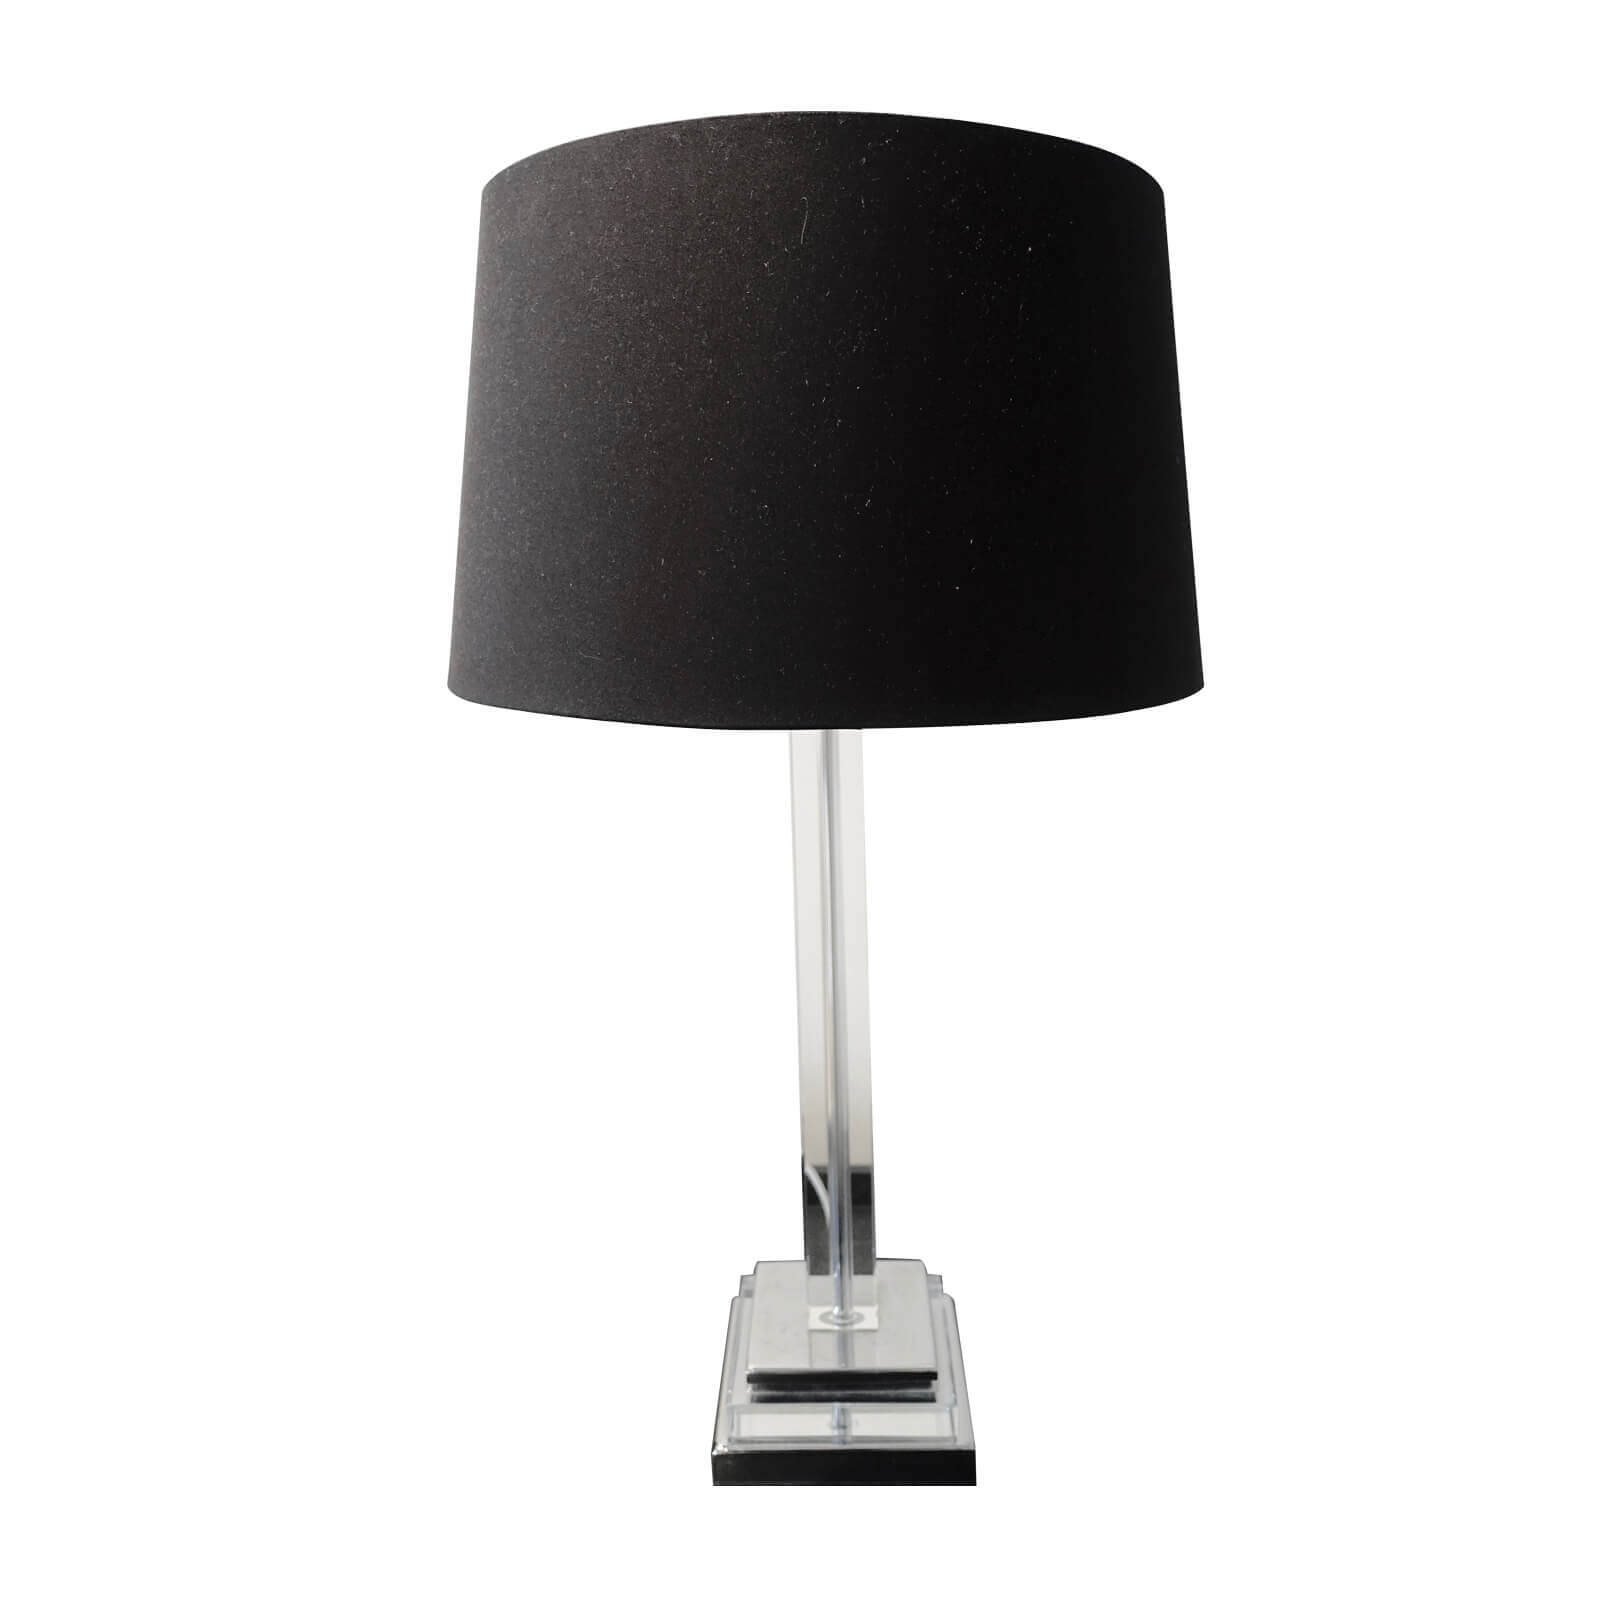 Two Design Lovers bedside table lamps with black shades